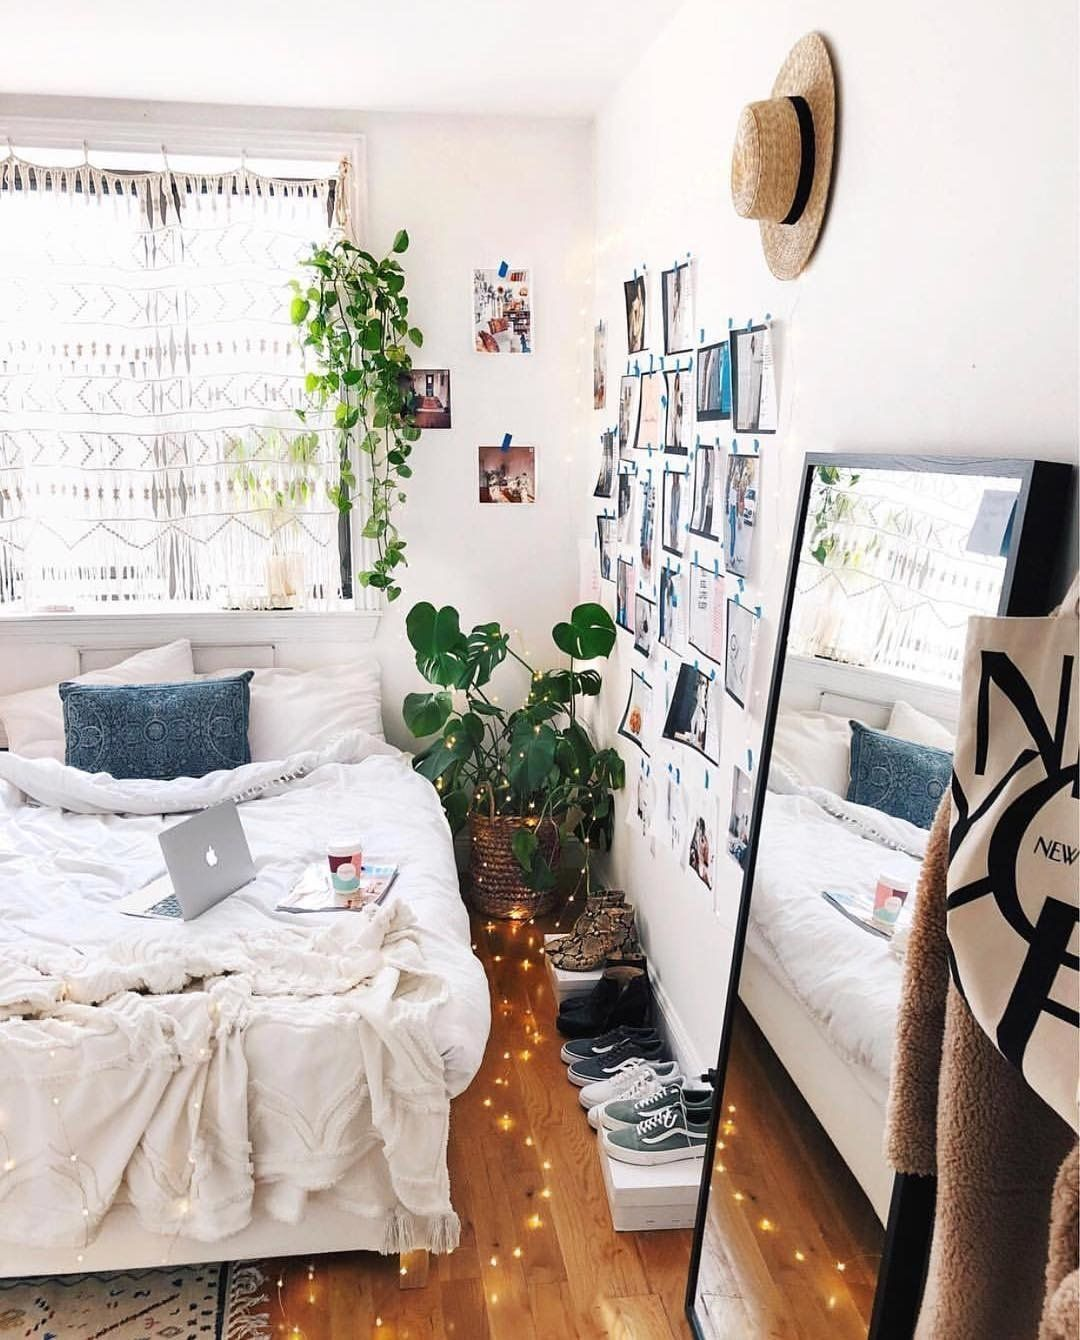 Bedroom Ideas Urban Outfitters 37 Urban Outfitters Bedroom Ideas There 39s No Place Like